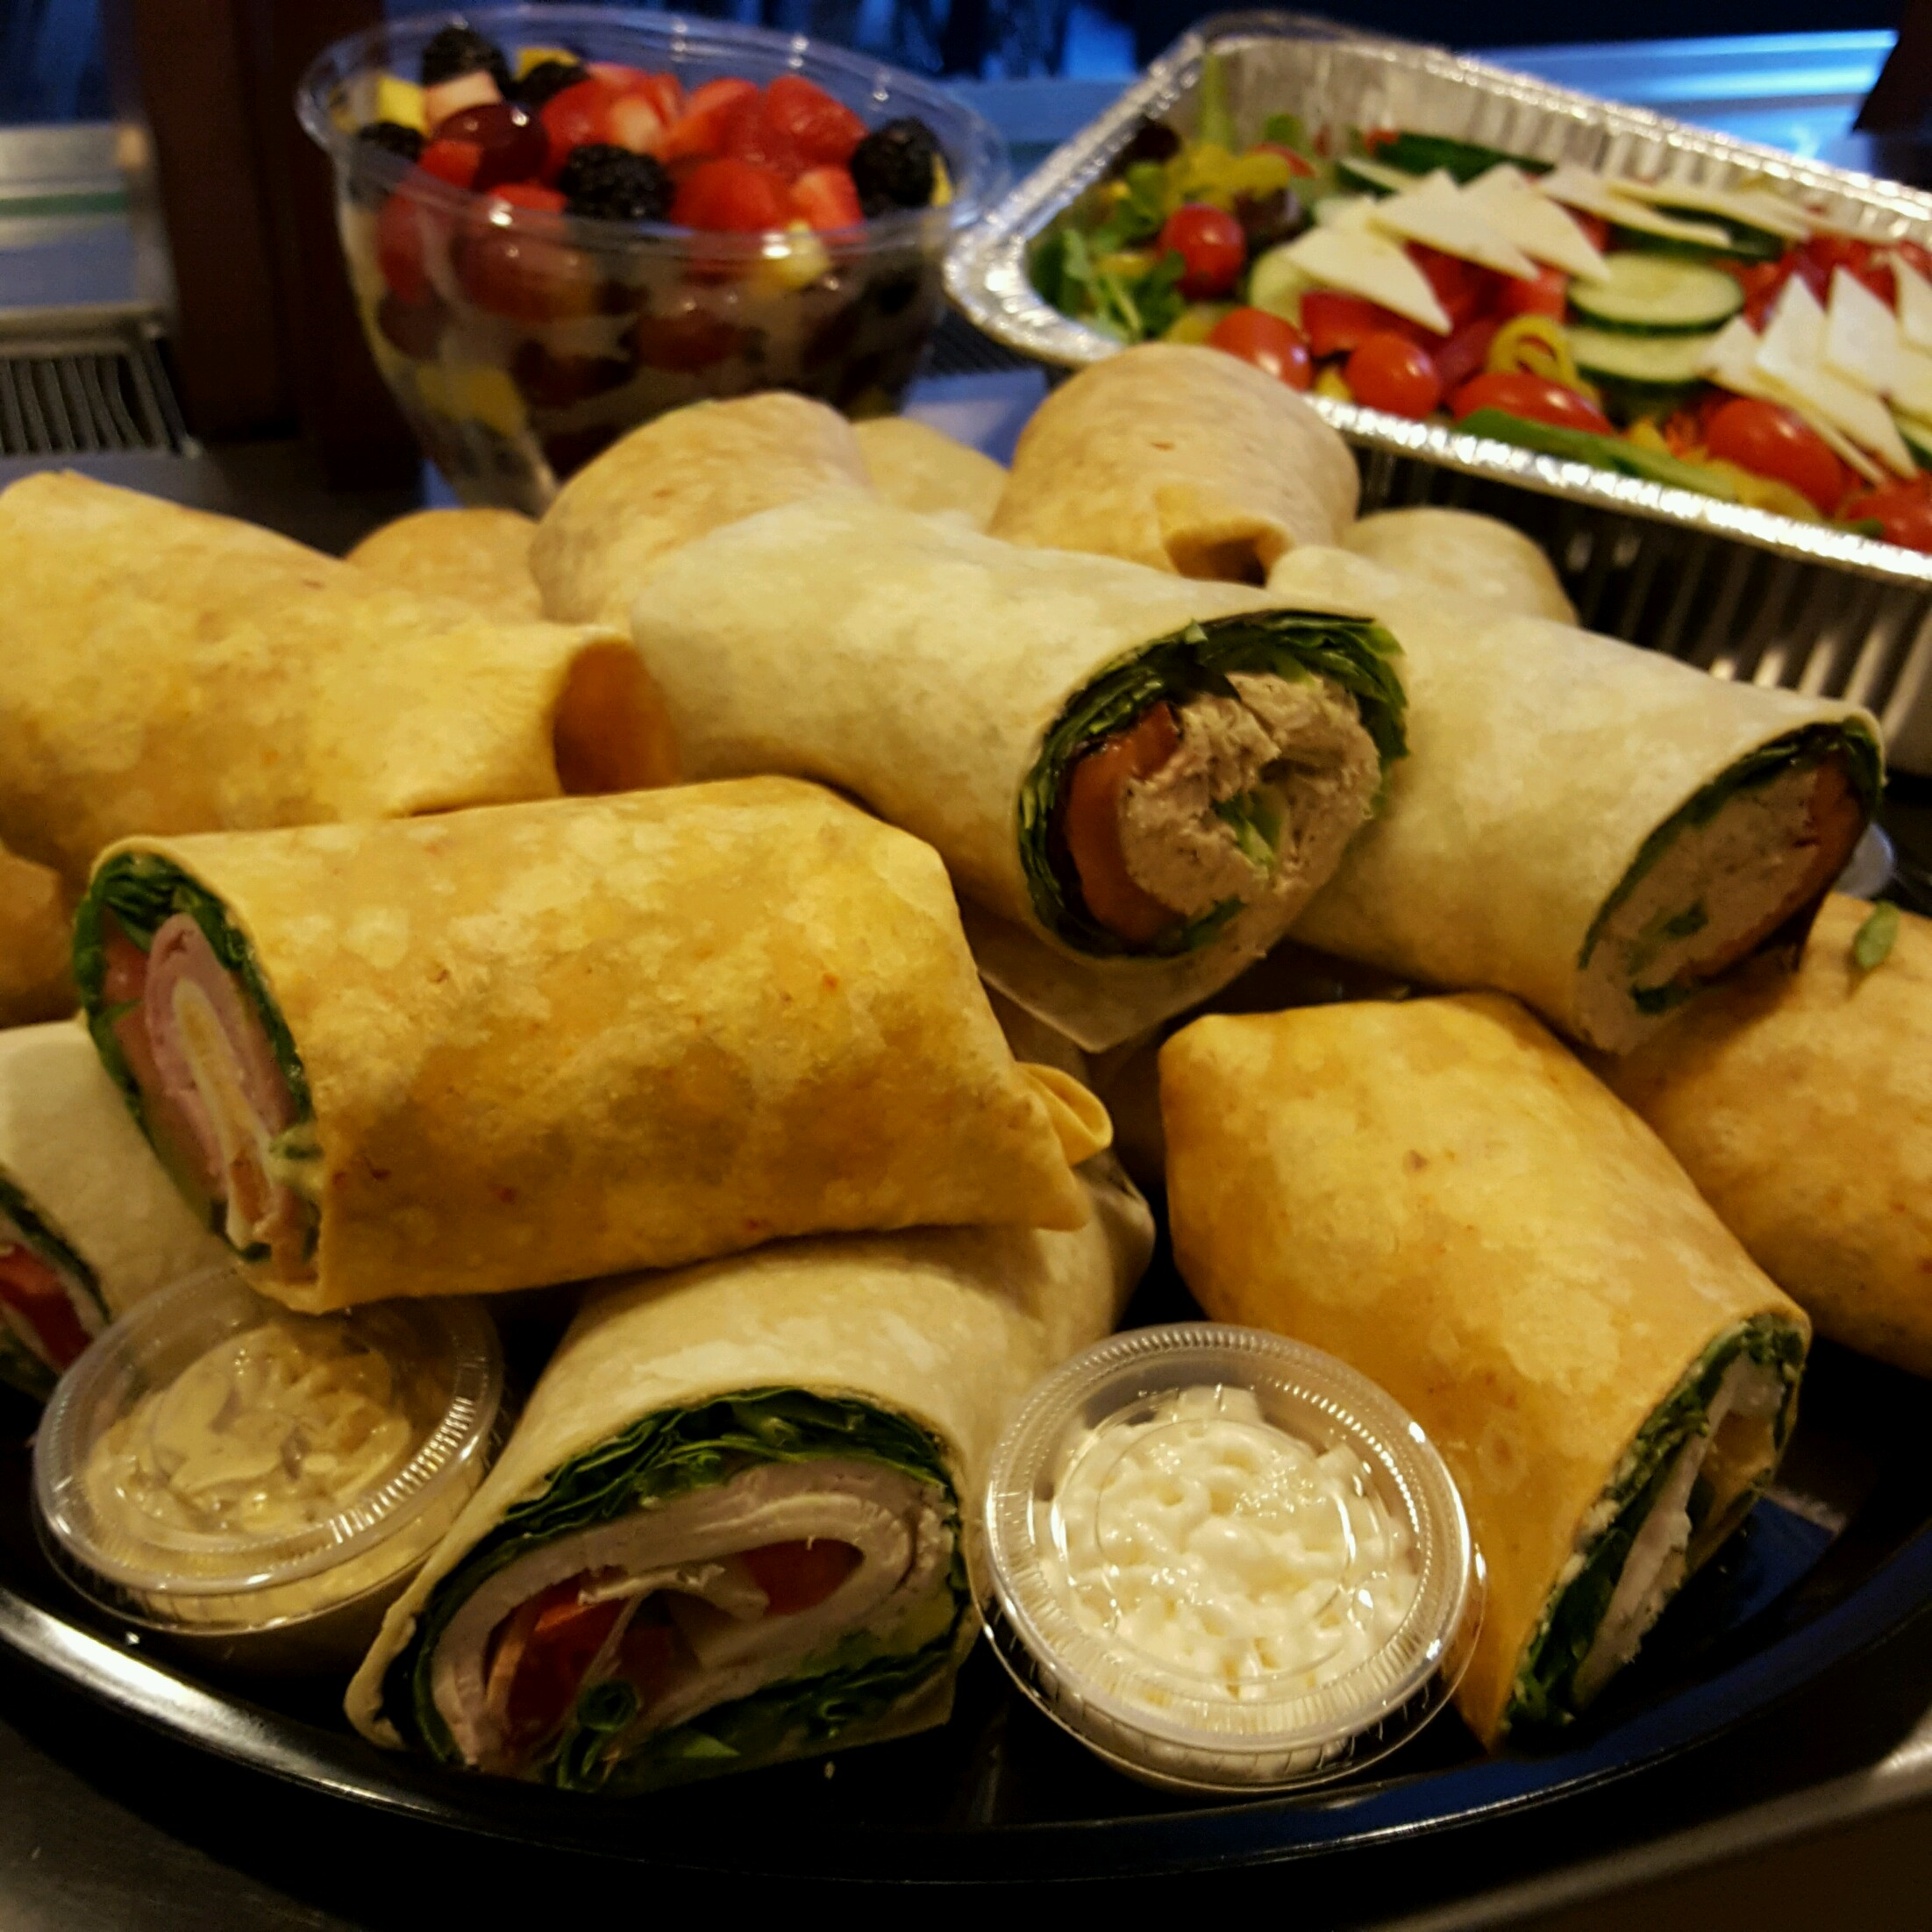 Fresh wraps and salad for catering!